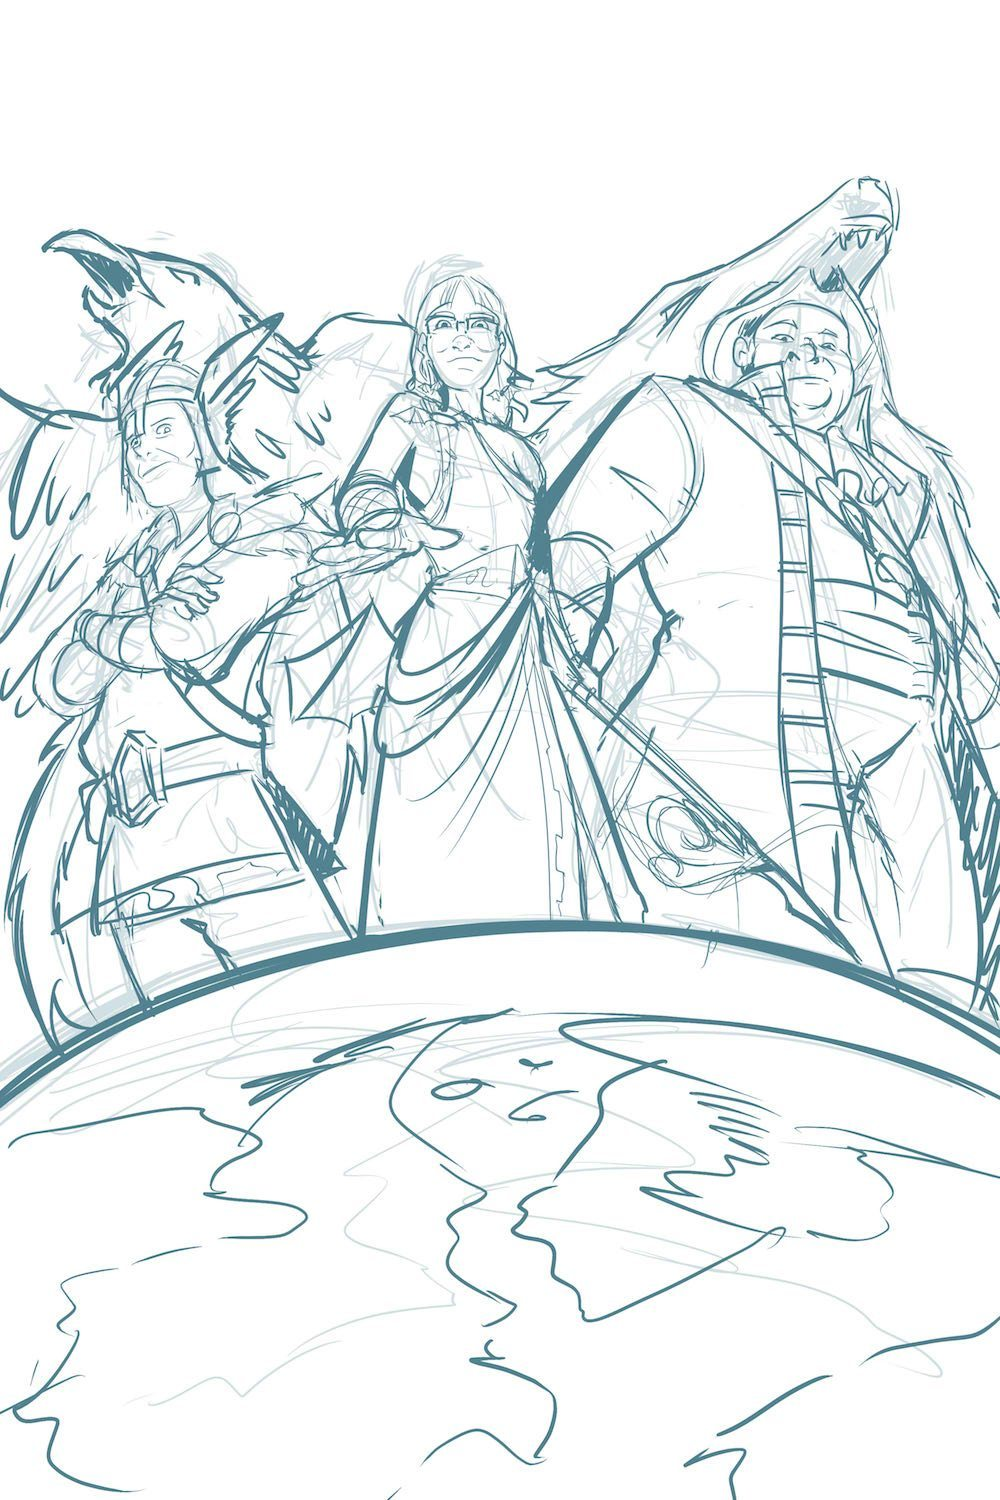 Draft Illustration of Gods Looking at Earth by Silvadoray